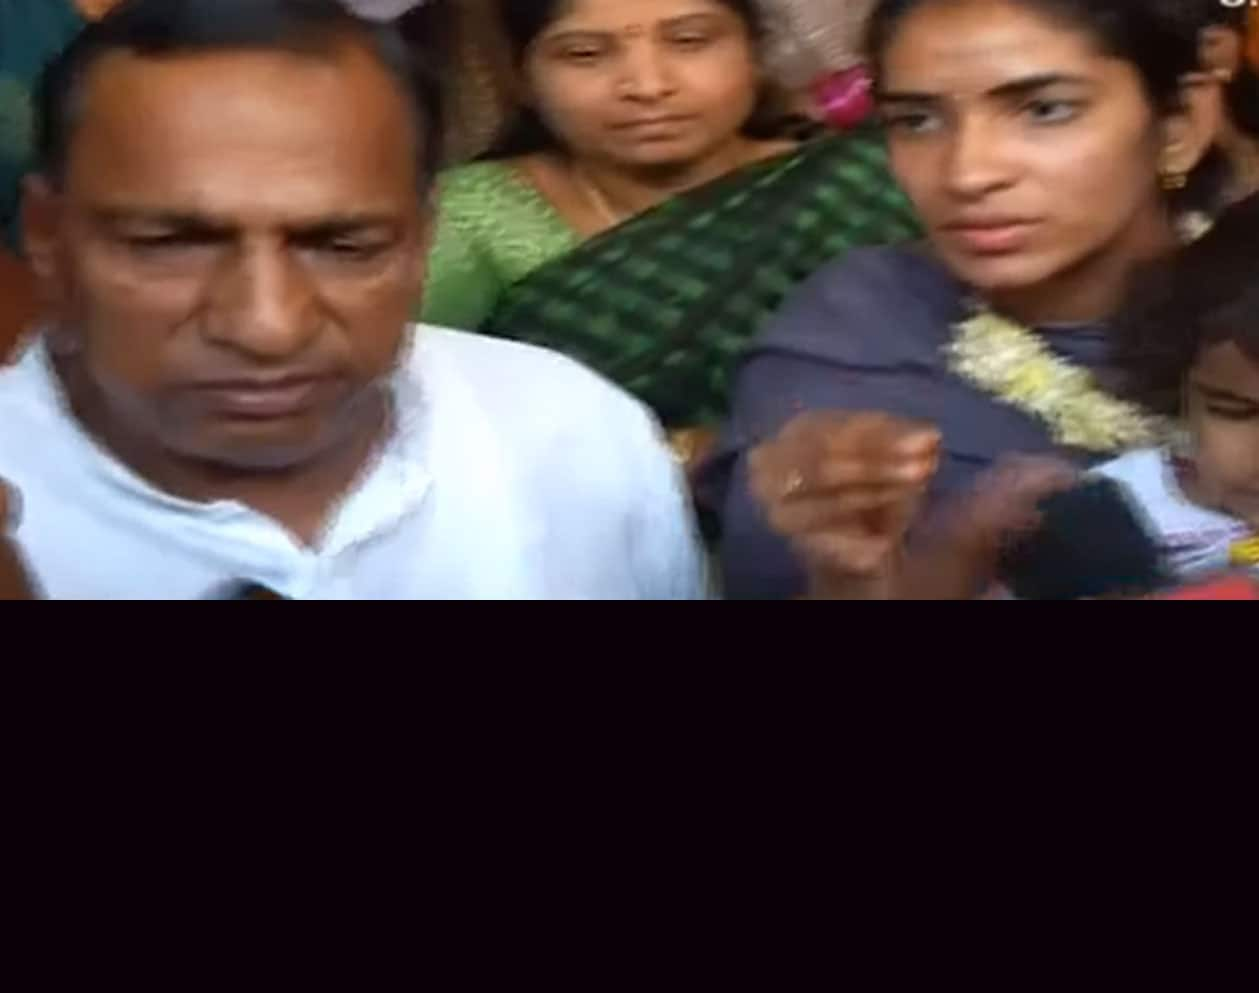 TRS MP Mallareddy pitches in to settle  the dispute between Sangeetha and husband